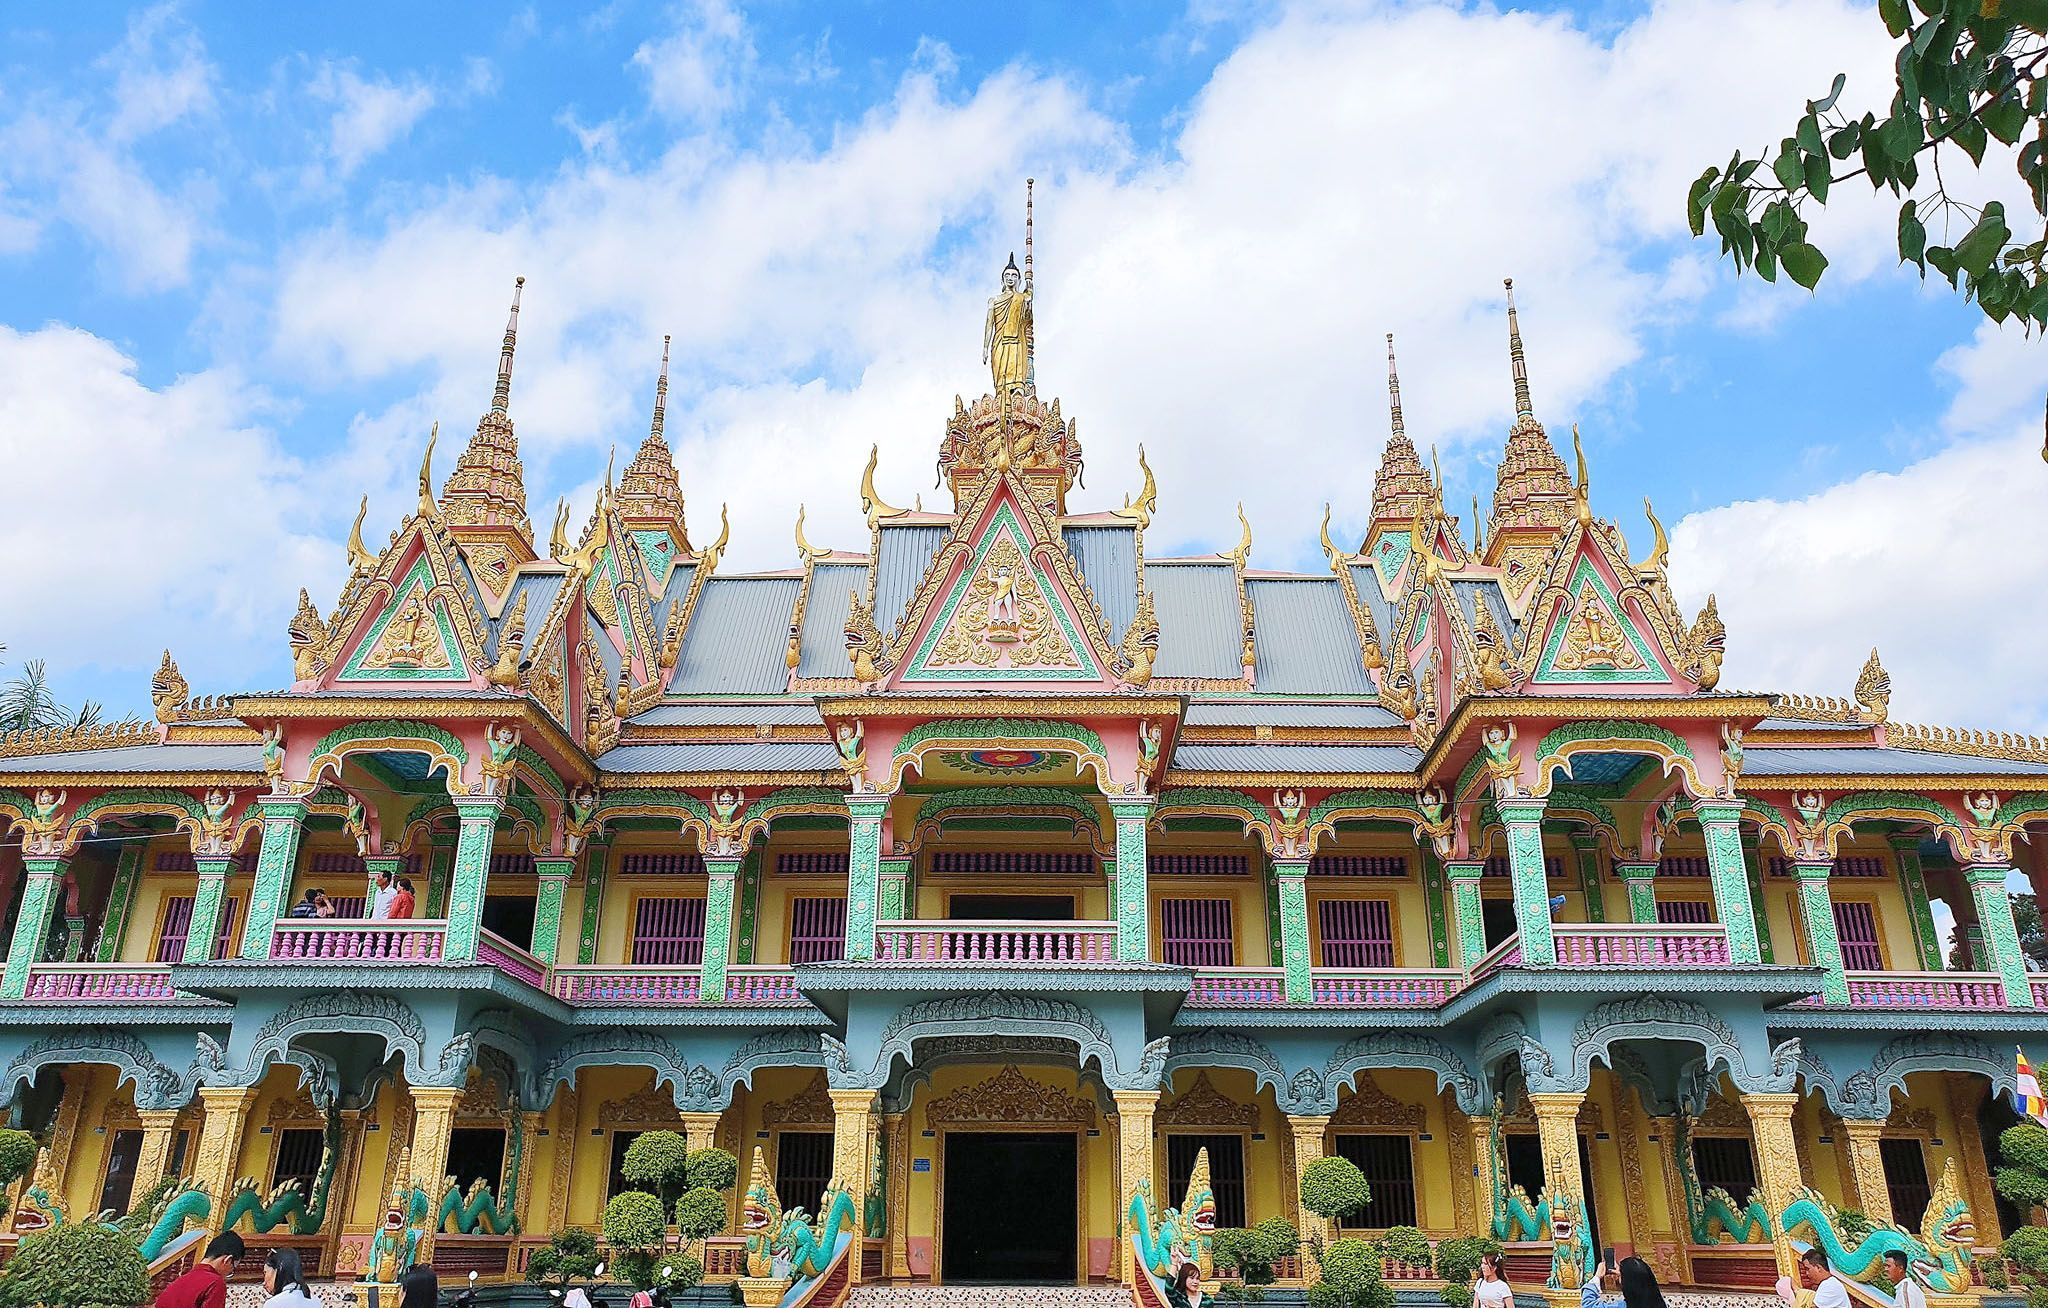 The impressive architecture of Som Rong Pagoda - the pagoda with the largest reclining Buddha in Vietnam